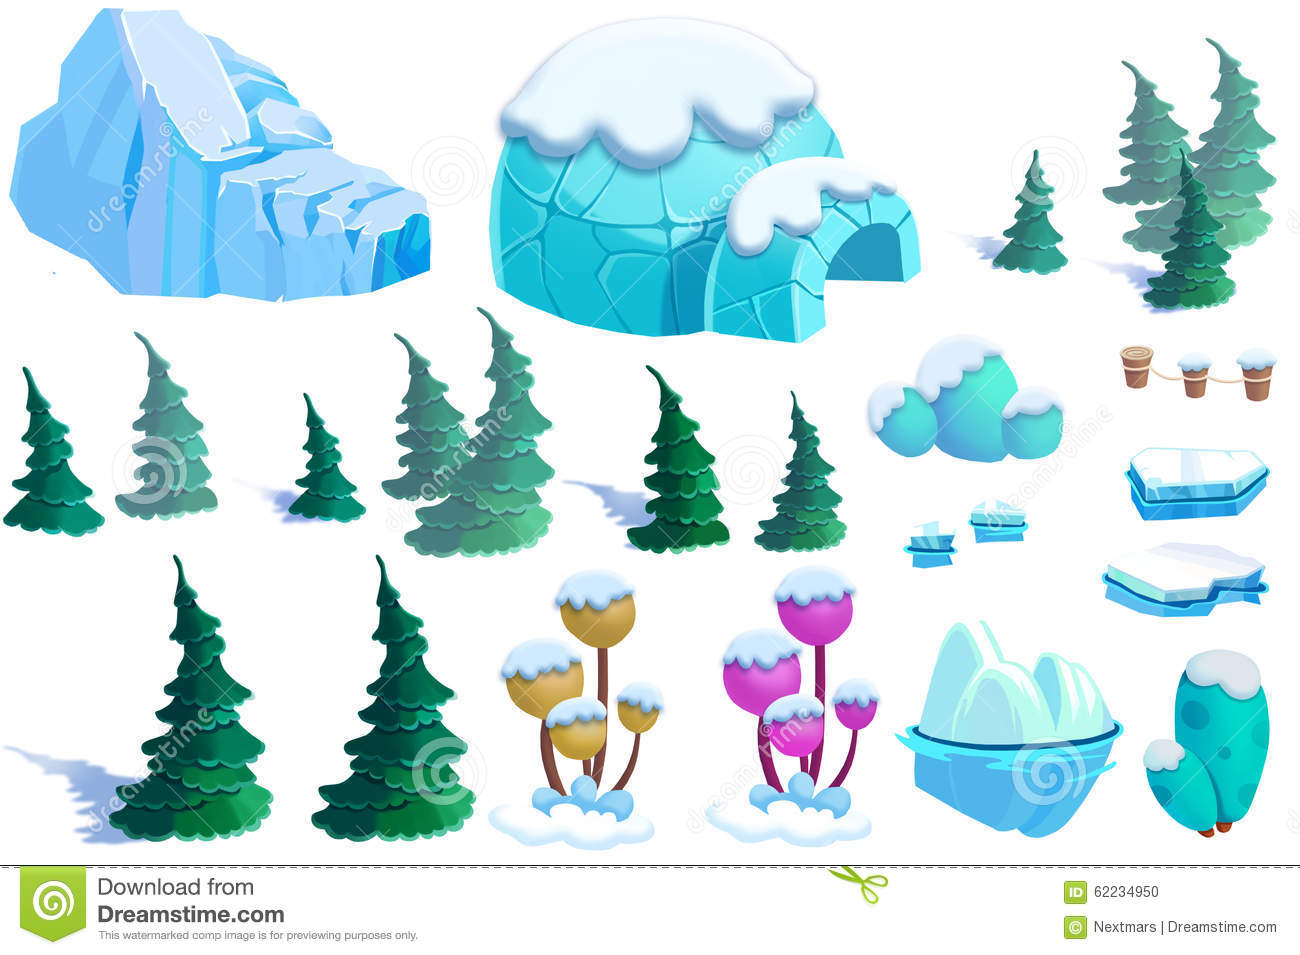 Ice Tree clipart #20, Download drawings